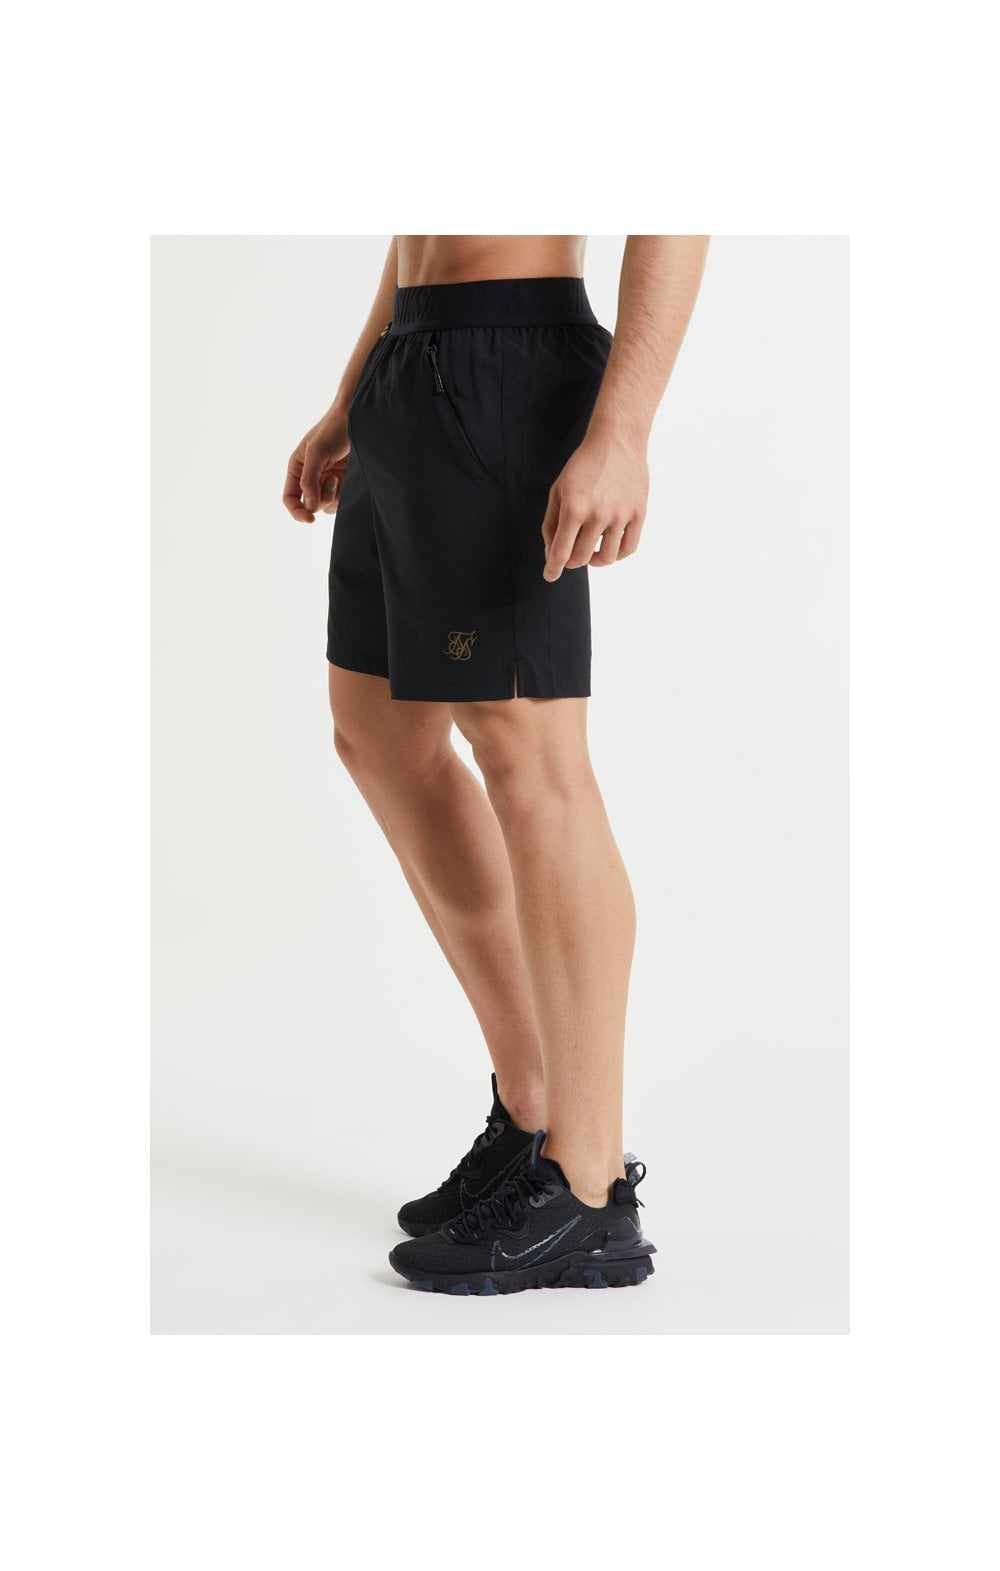 SikSilk Pressure Woven Long Shorts - Black (2)